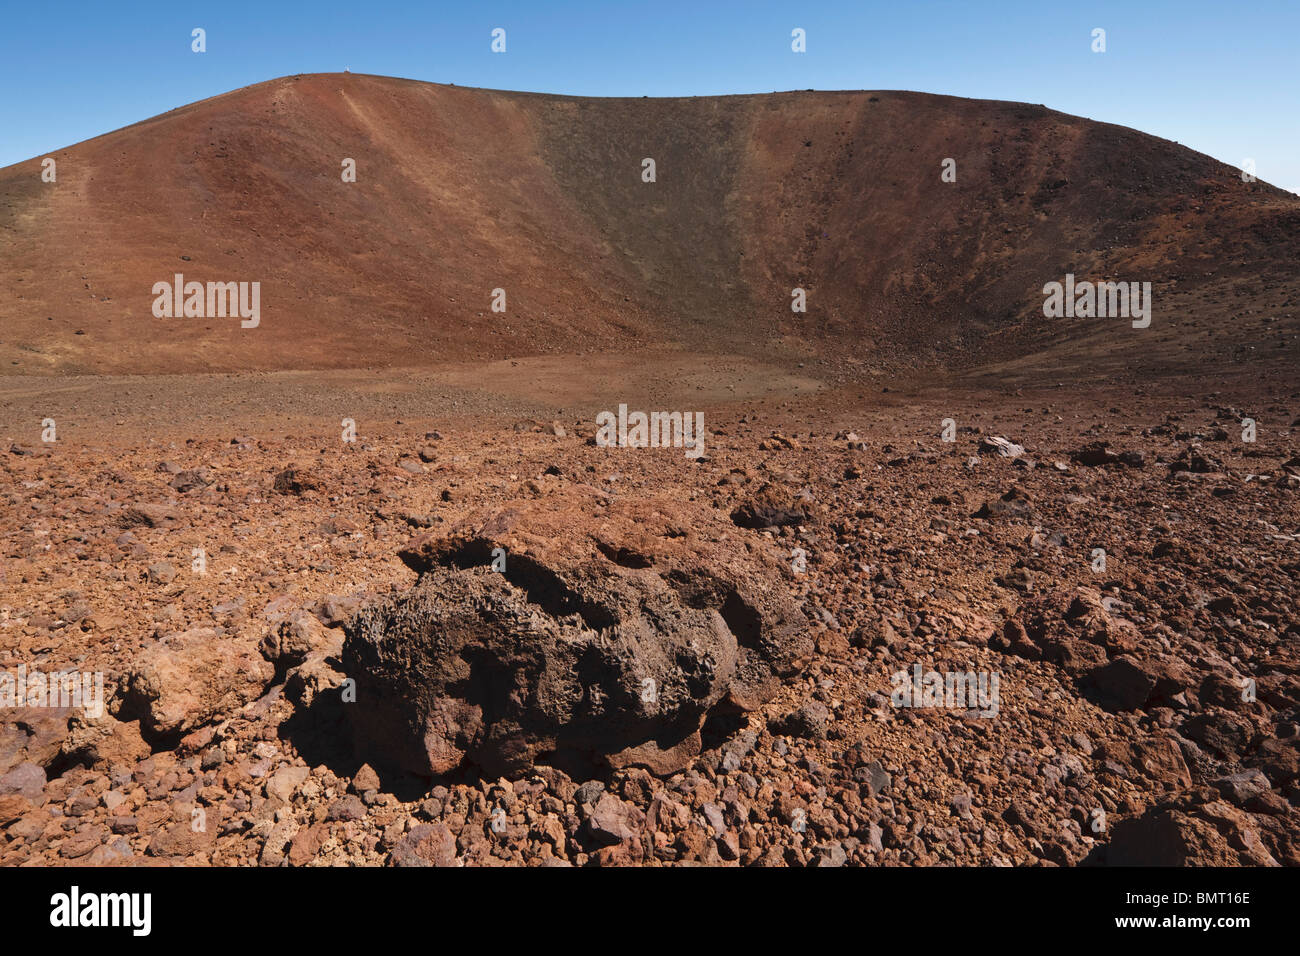 Hawaii, United States Of America; Small Volcanic Crater At The Summit Of Mauna Kea - Stock Image